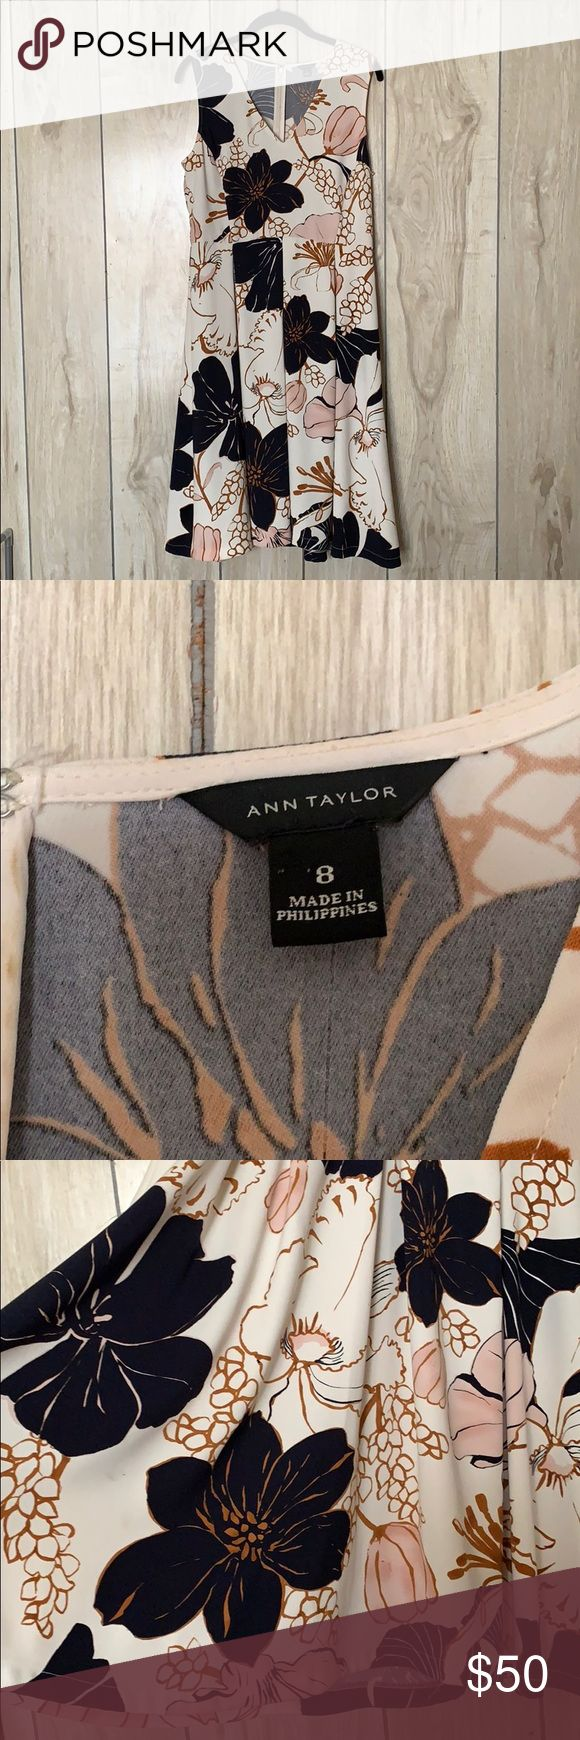 Ann Taylor Dress Beautifully patterned Ann Taylor dress! Perfect spring/summer d…